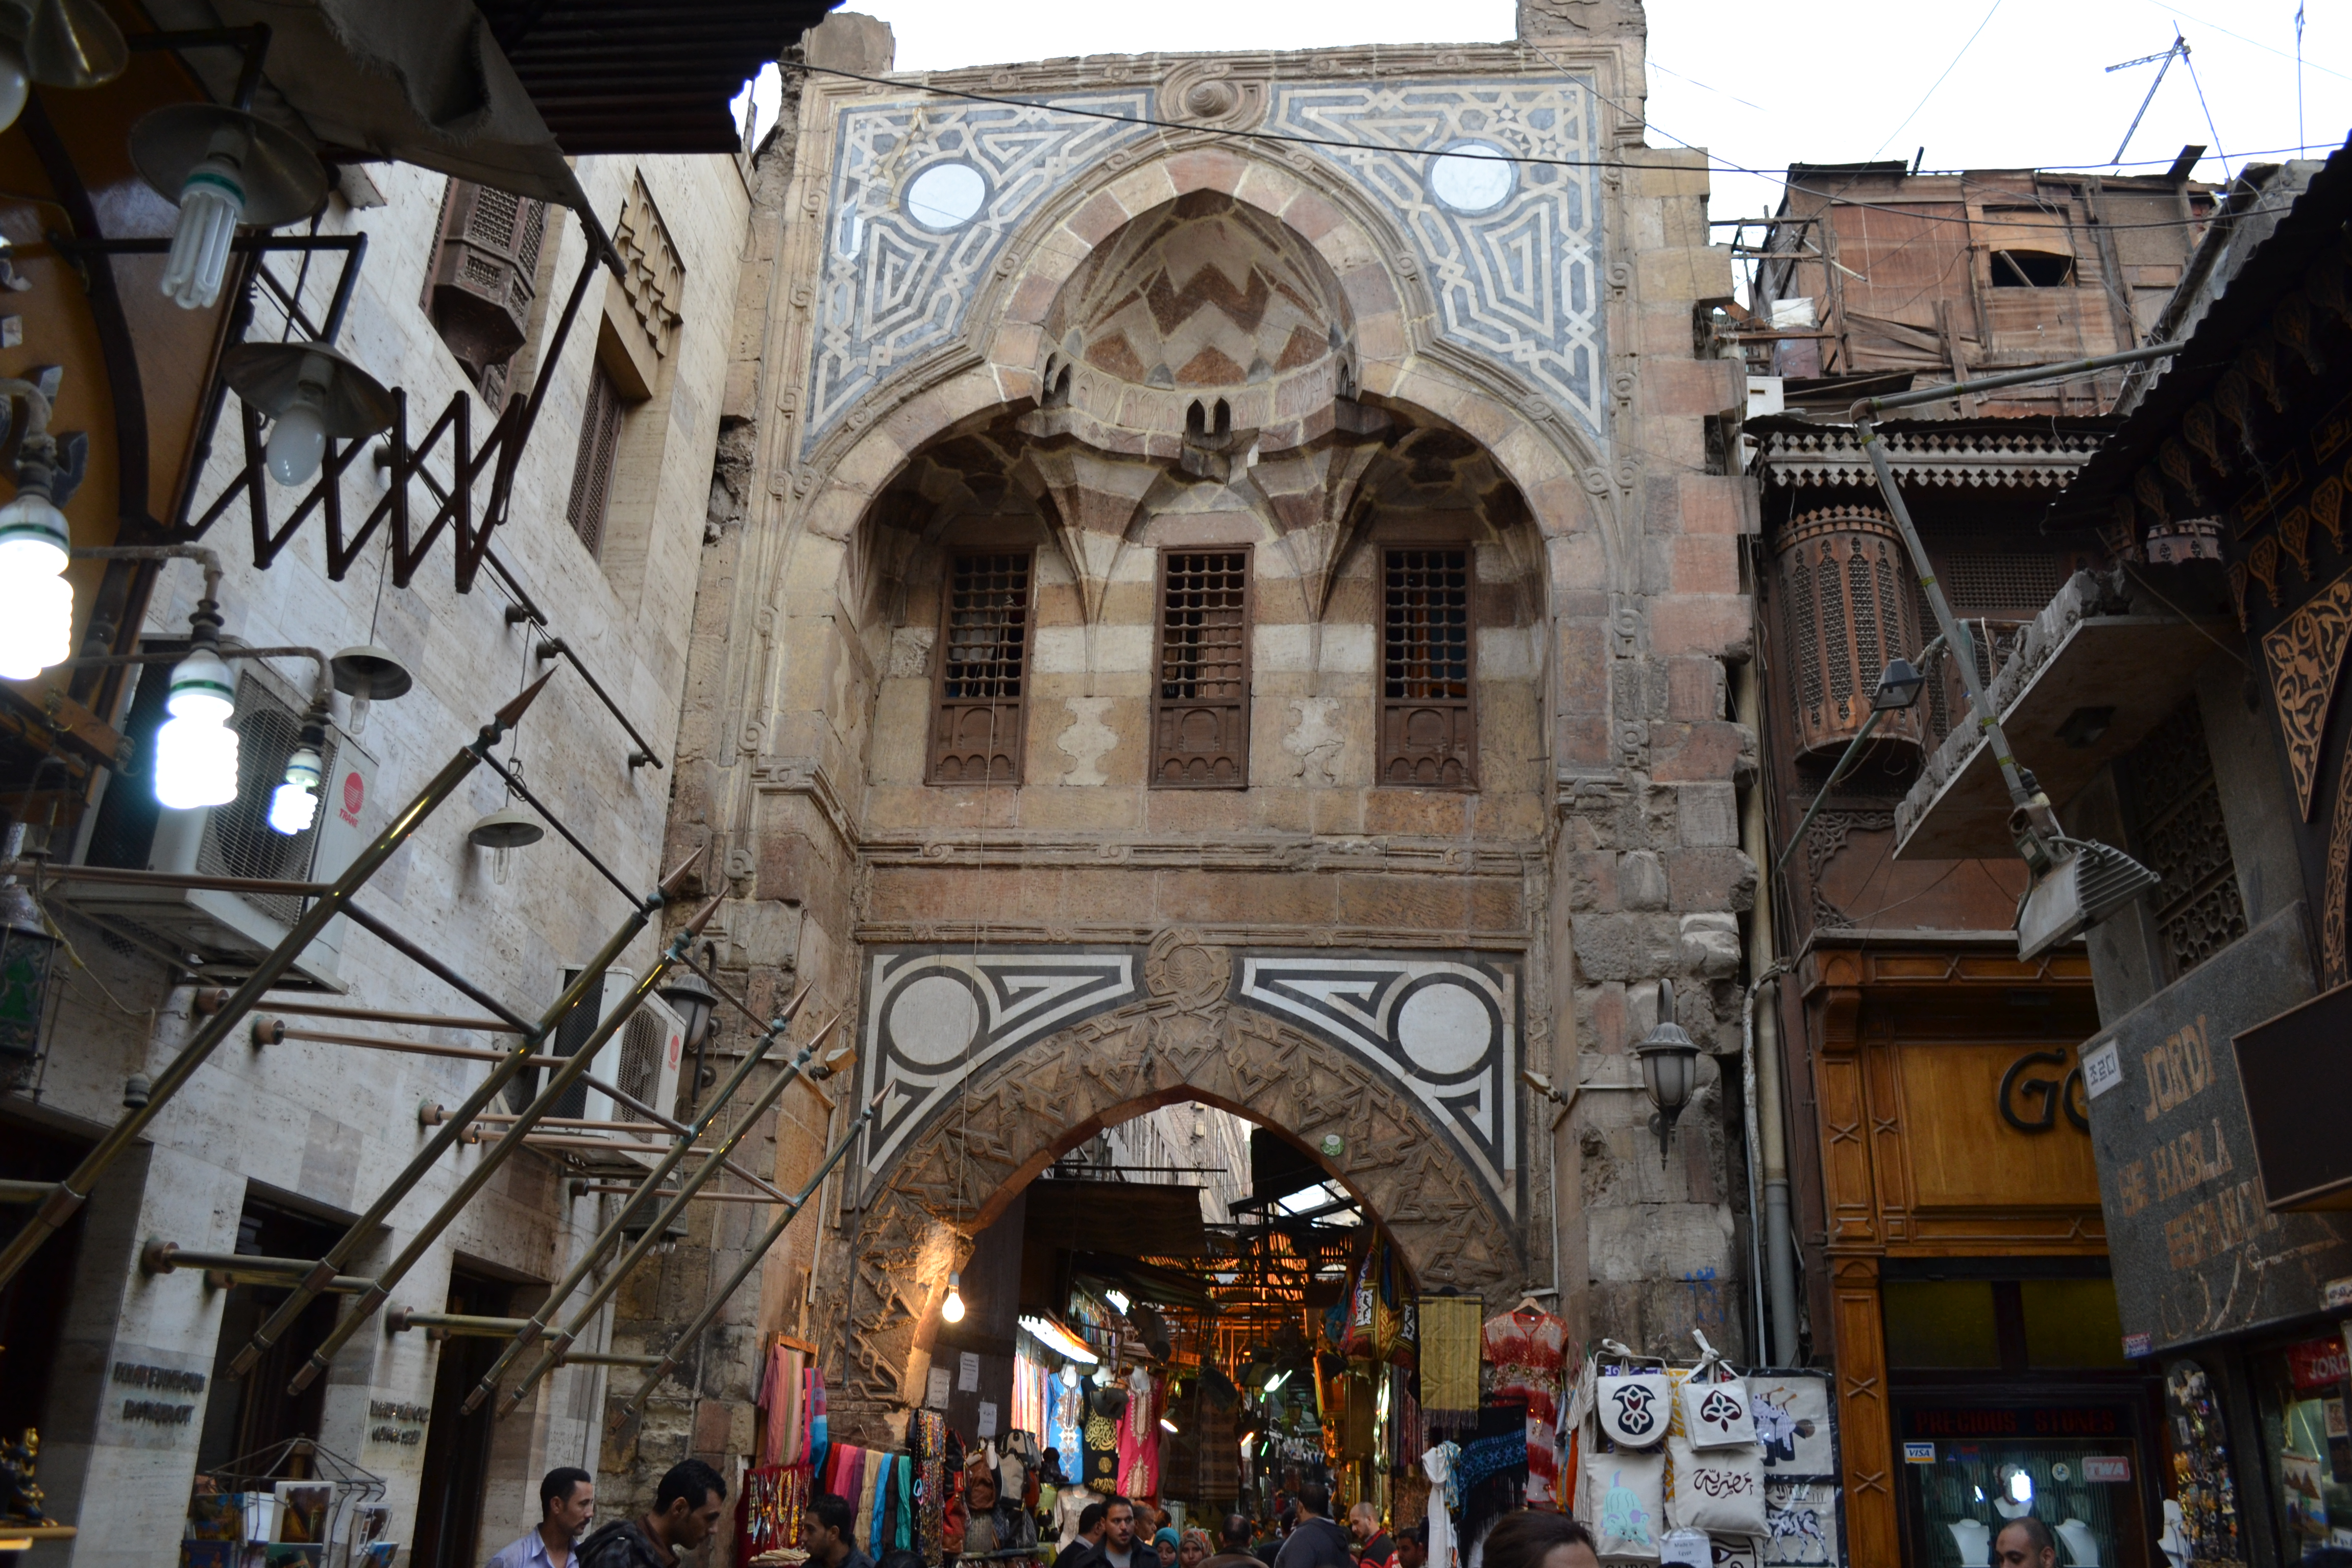 One of the many historical Islamic buildings in Khan El-Khalili